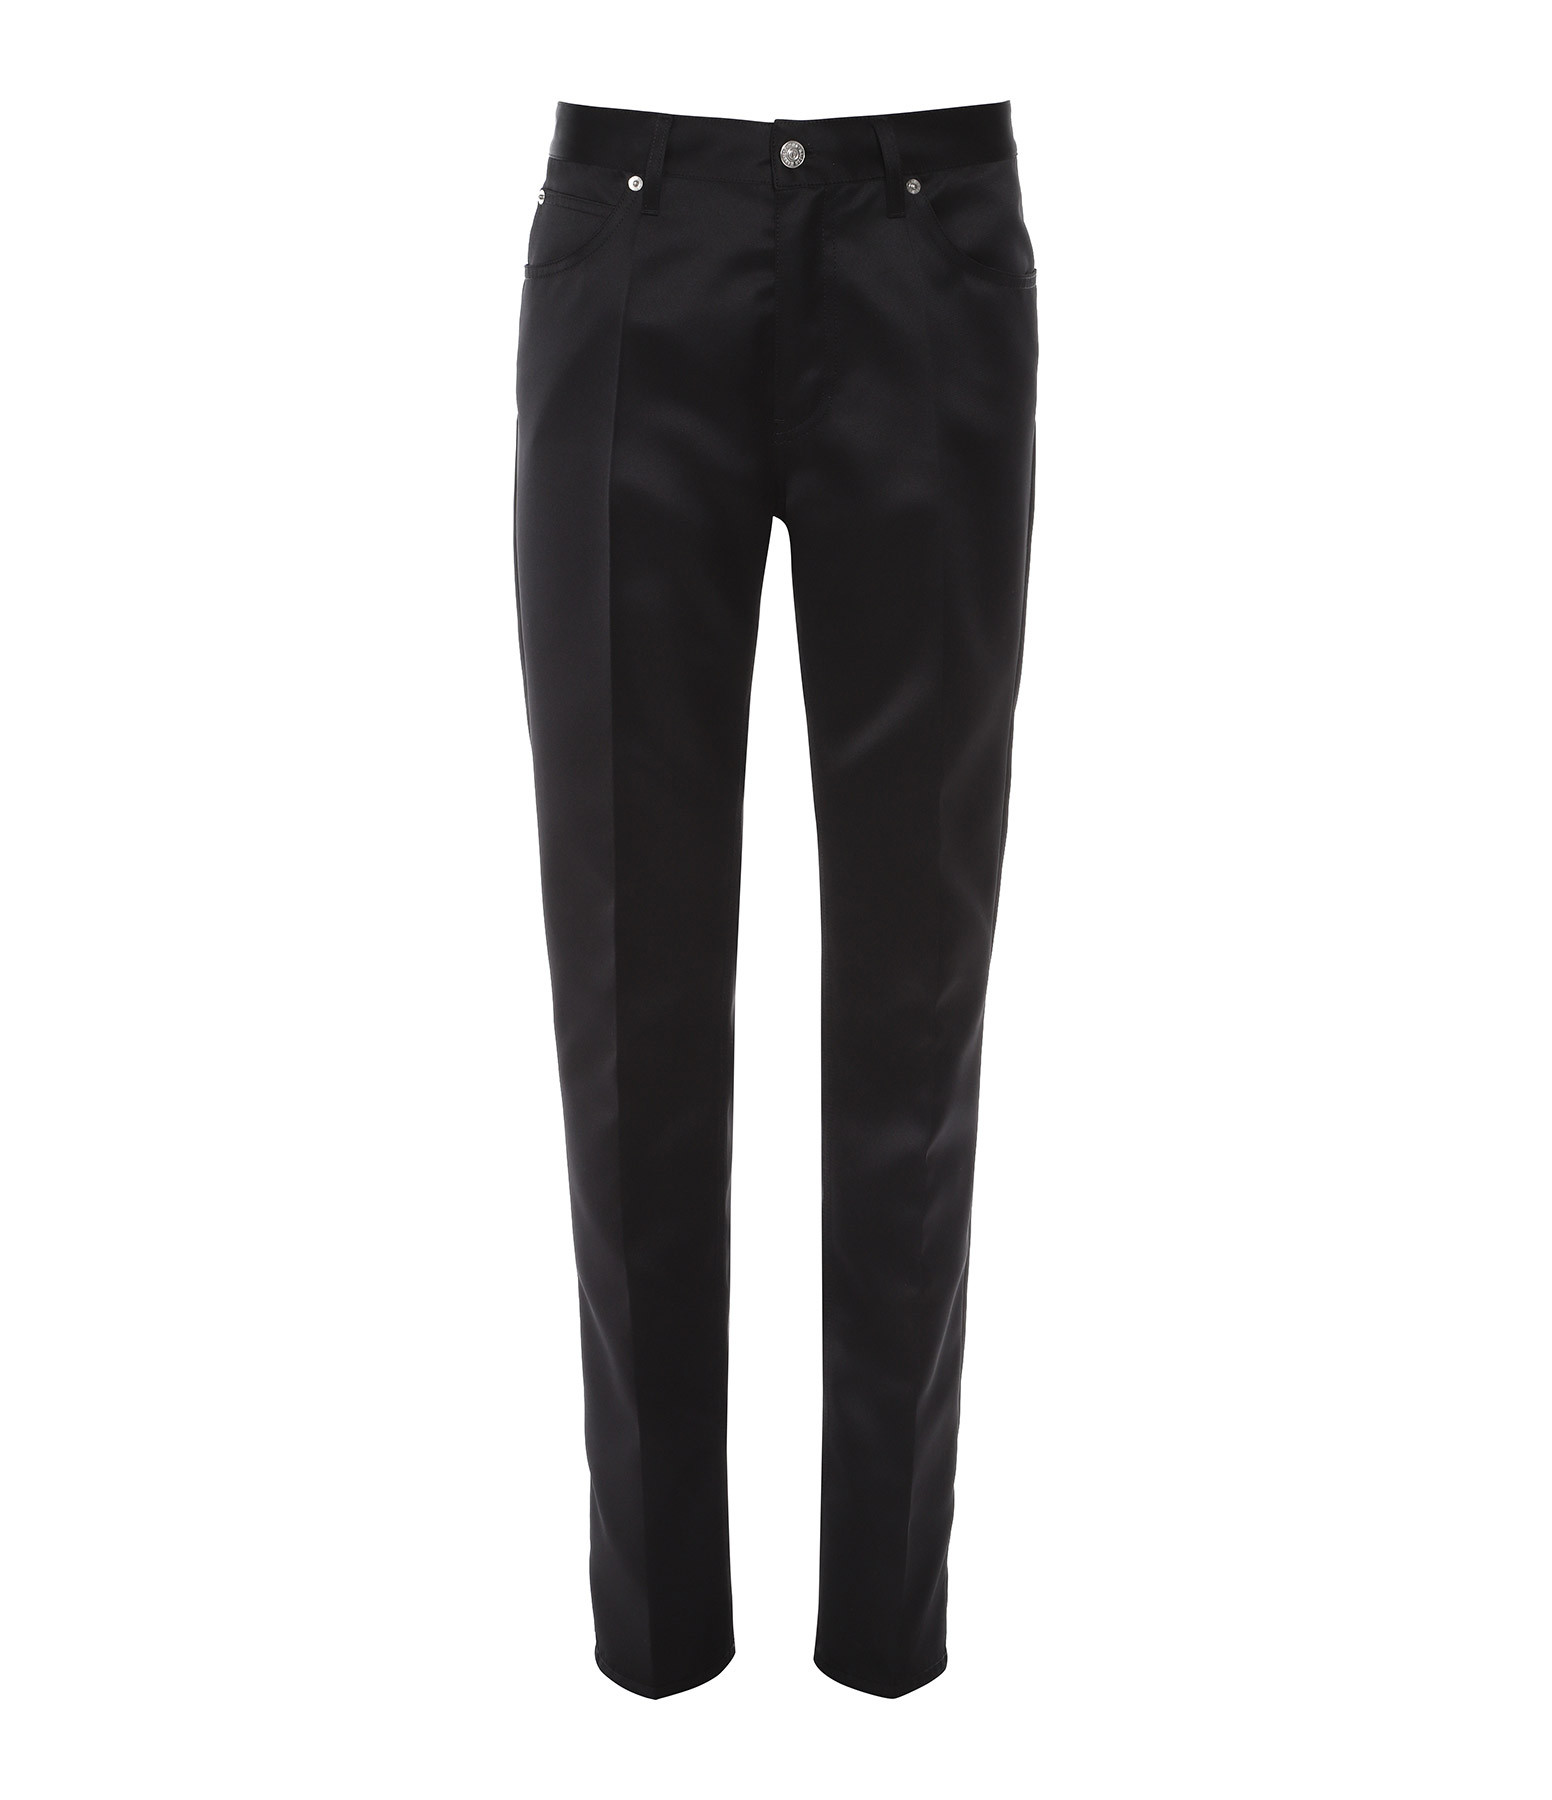 MM6 MAISON MARGIELA - Pantalon 5 Poches Noir Collection Studio